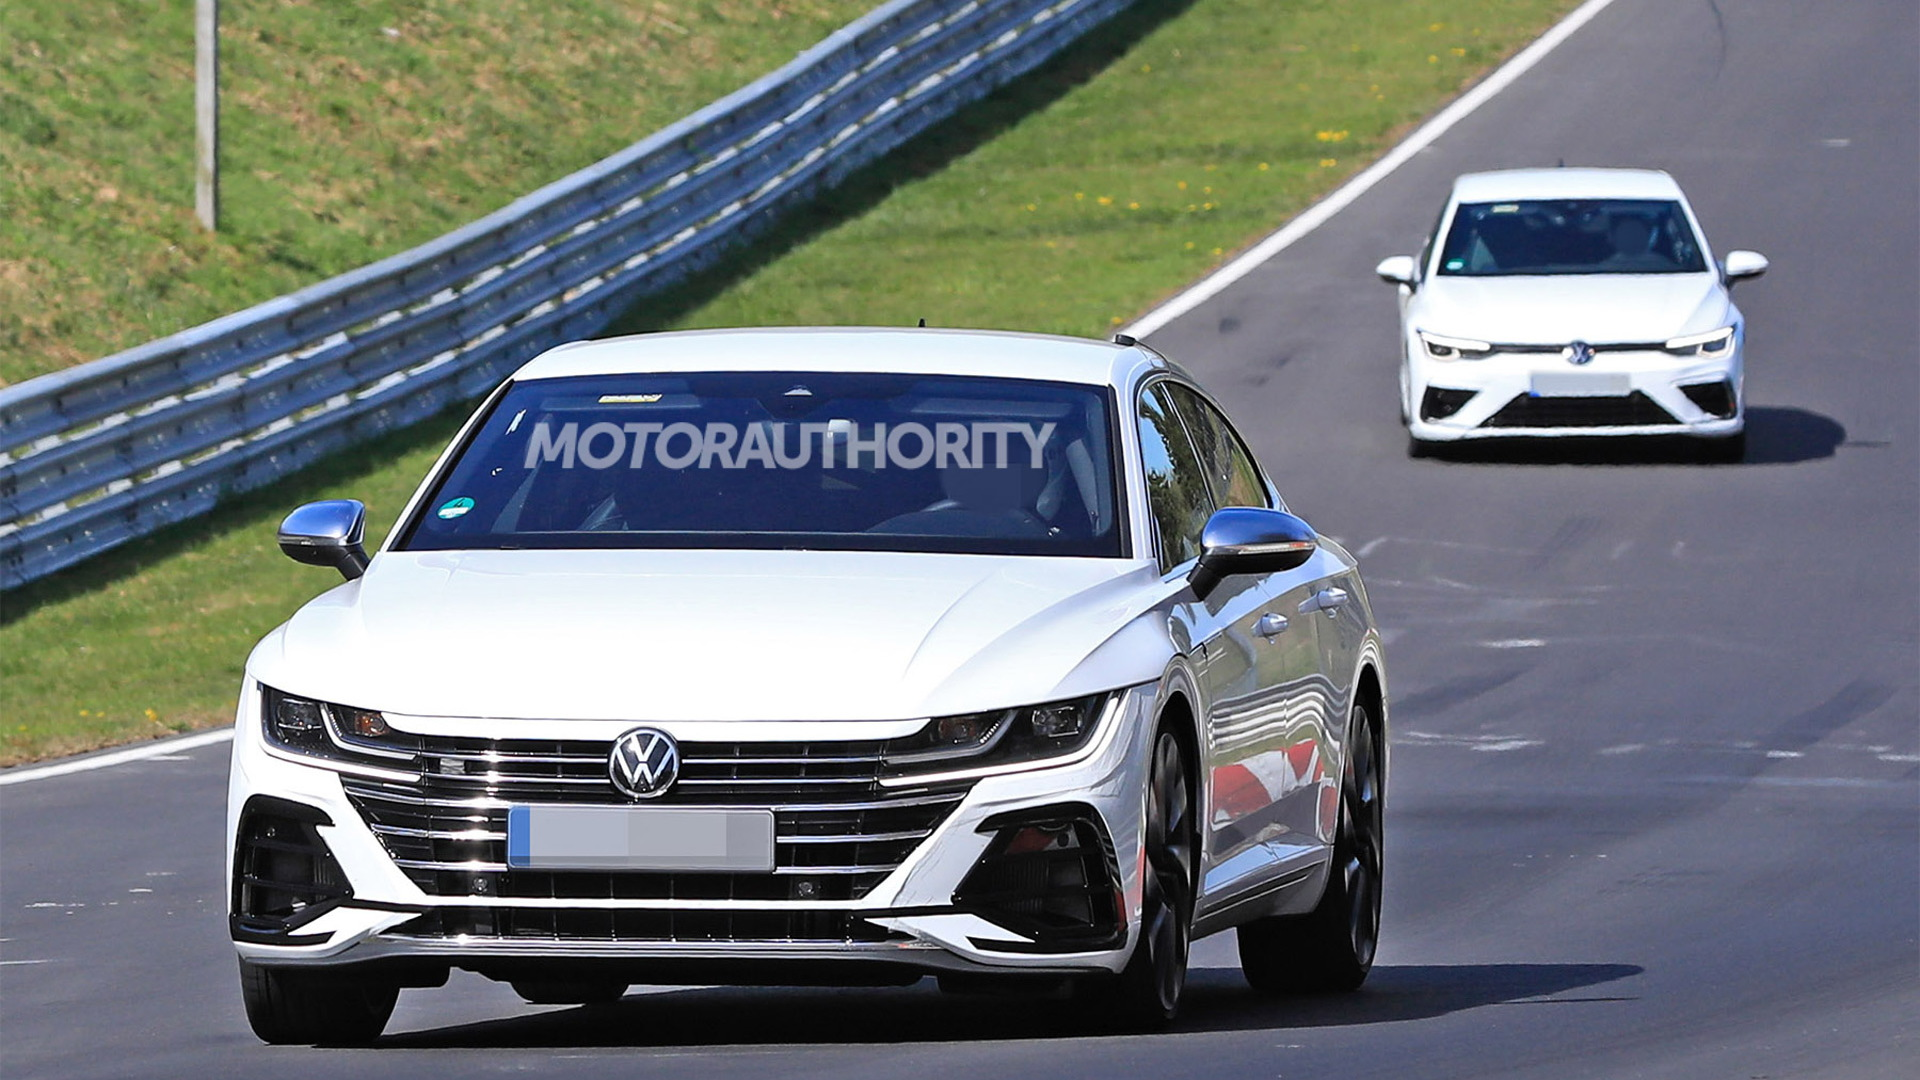 2021 Volkswagen Arteon R spy shots - Photo credit: S. Baldauf/SB-Medien